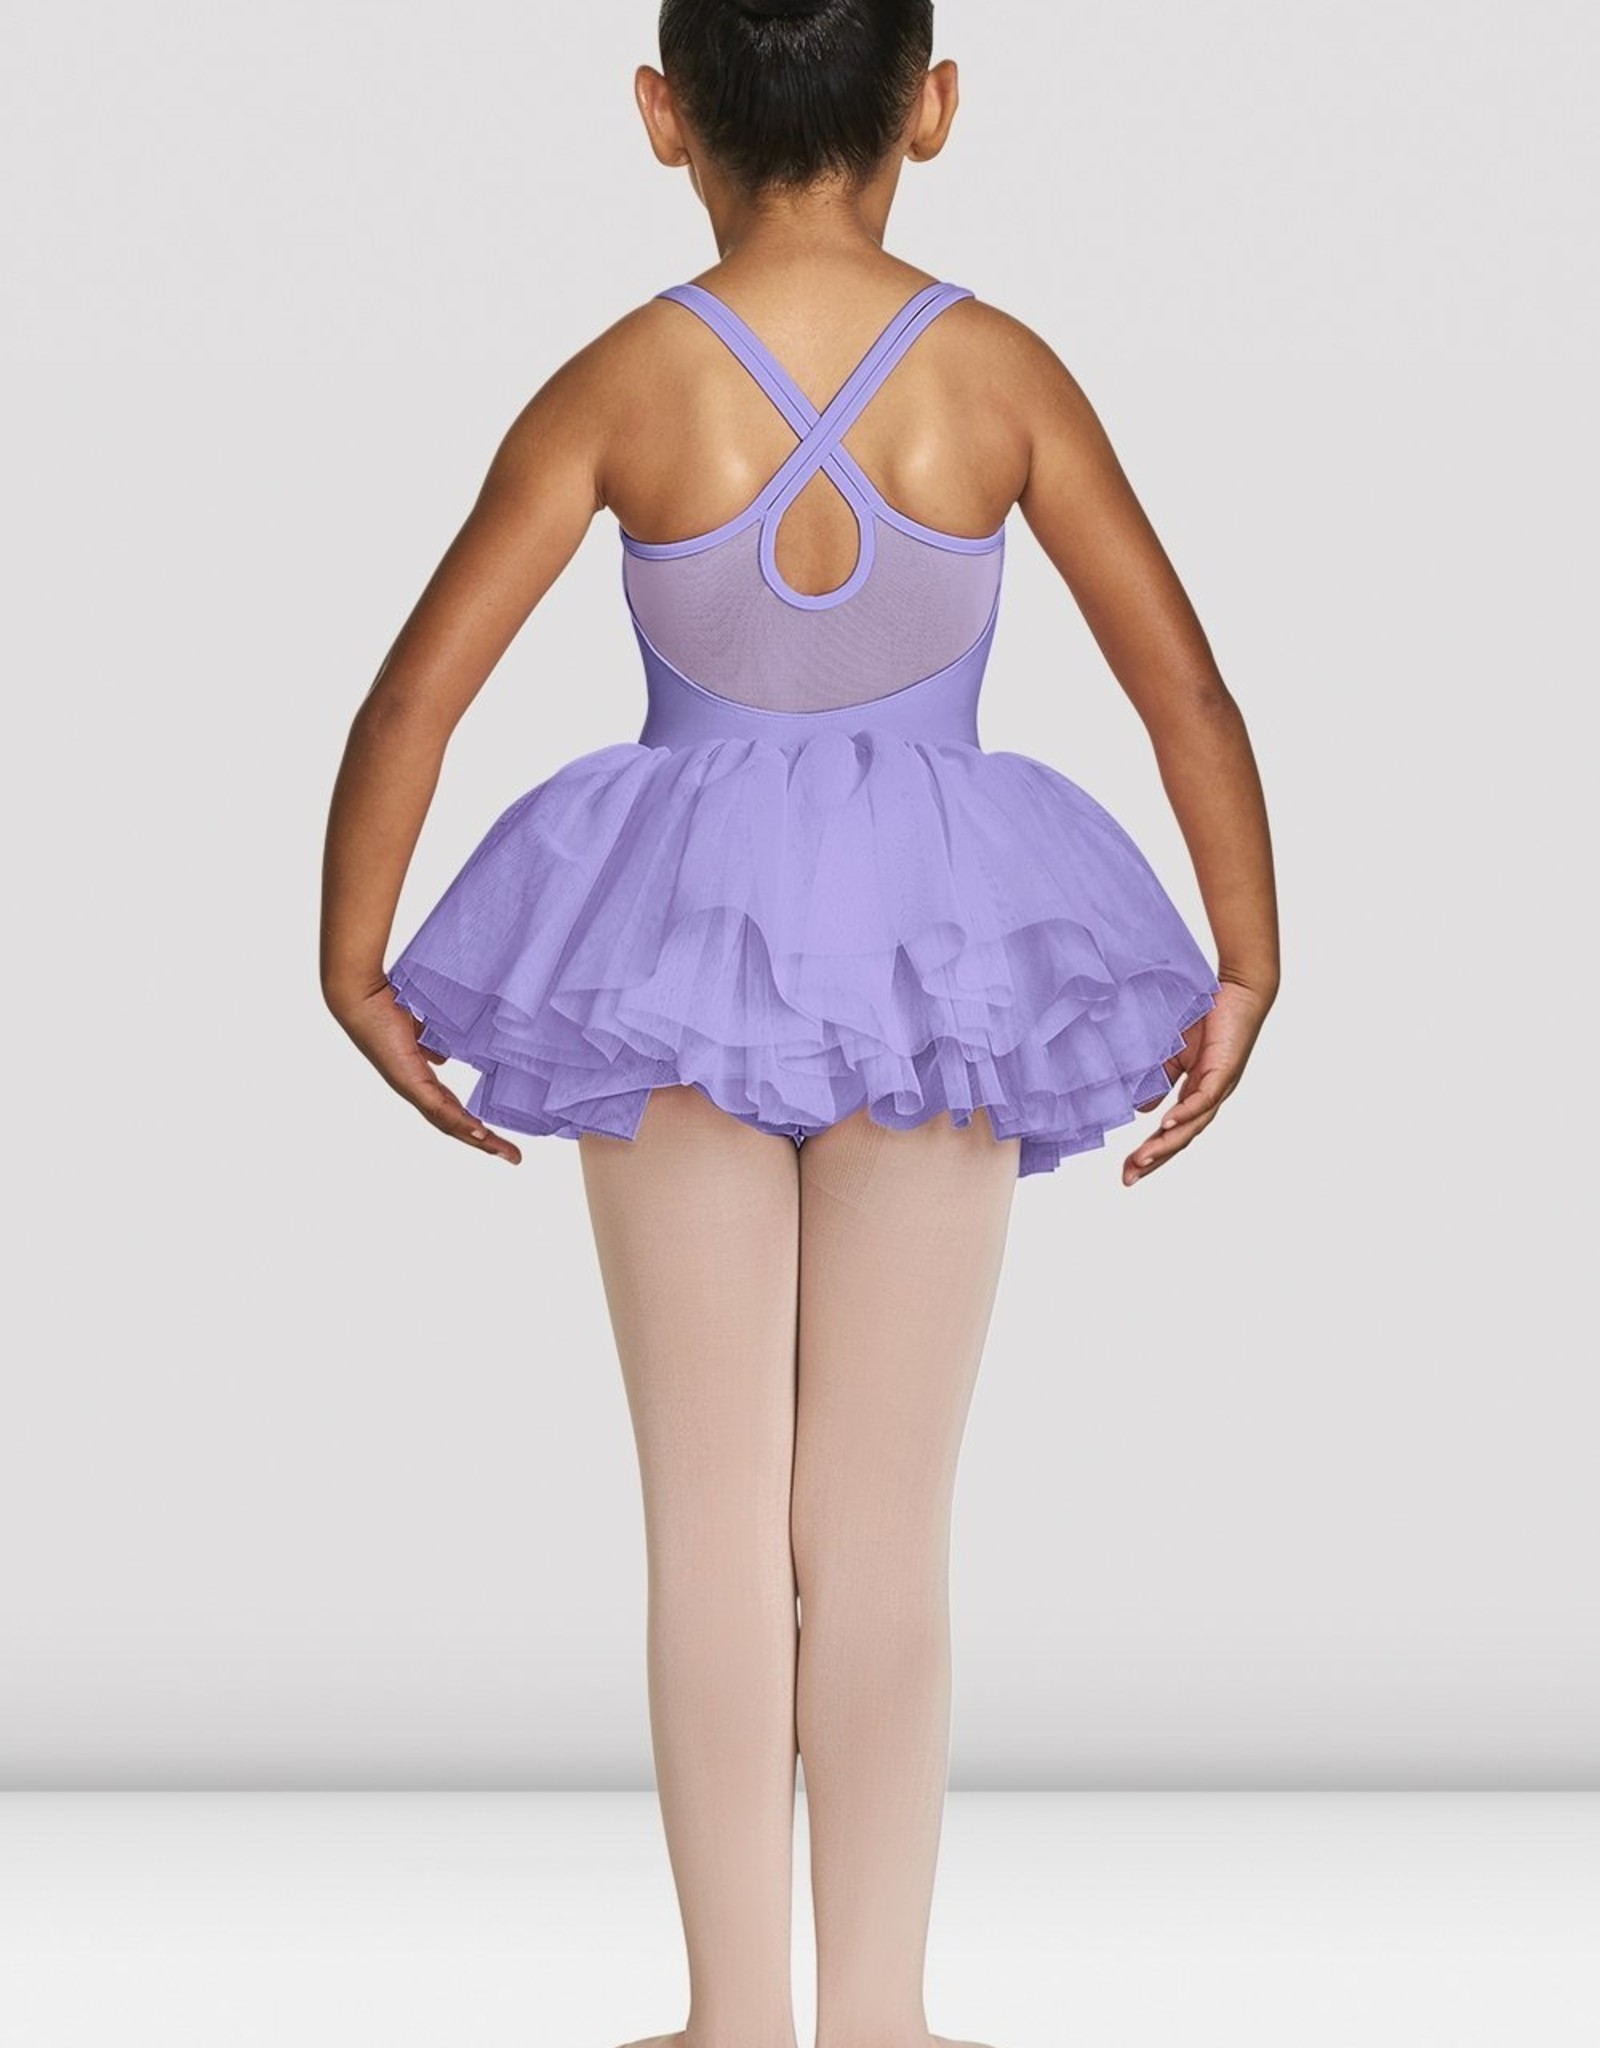 Bloch Bloch Mesh Back Cami Tutu Leotard - CL4901